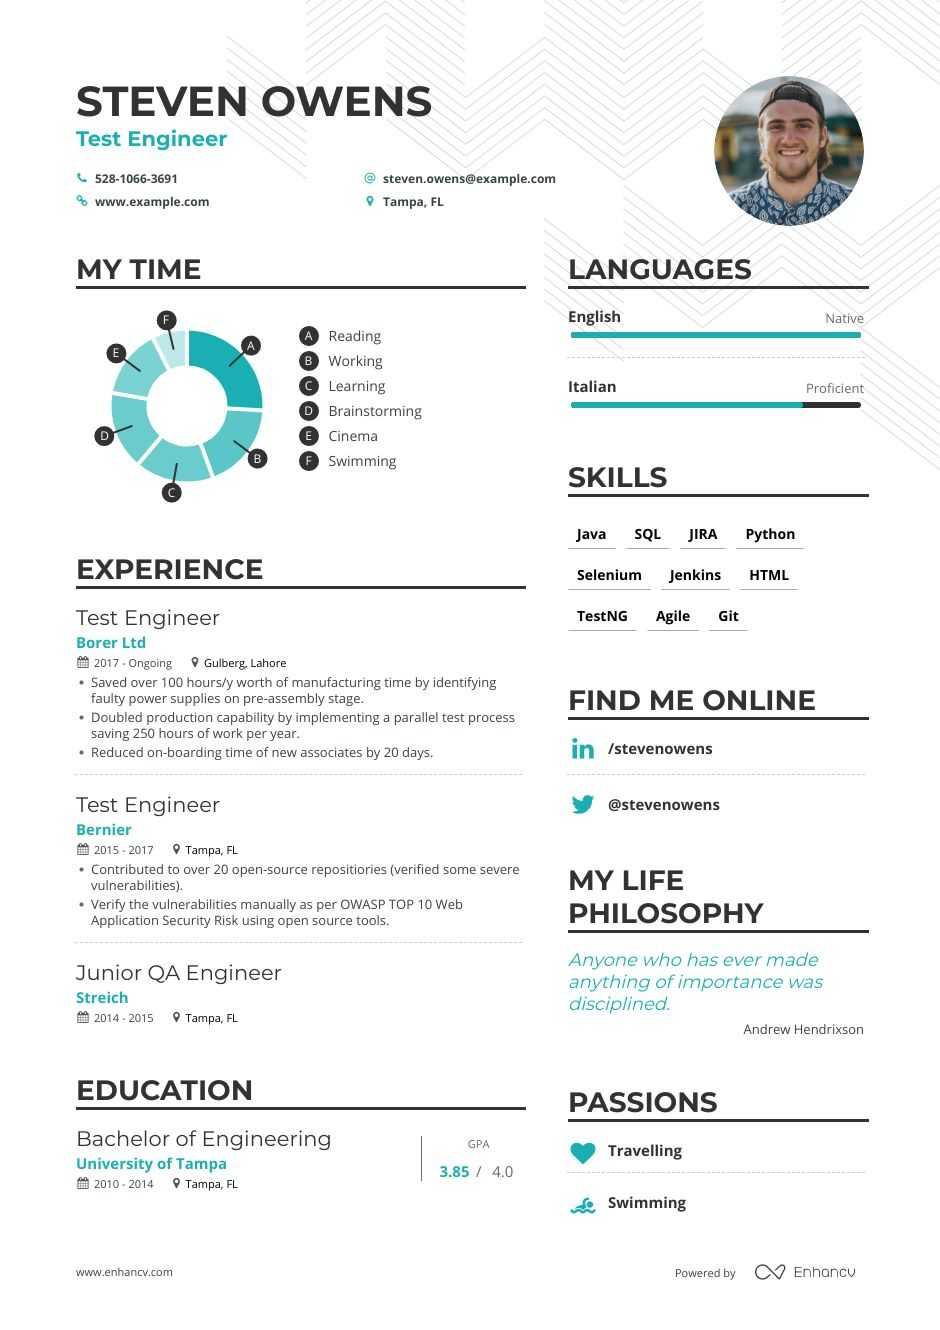 top test engineer resume examples expert tips enhancv sample for experienced cover letter Resume Sample Resume For Experienced Test Engineer